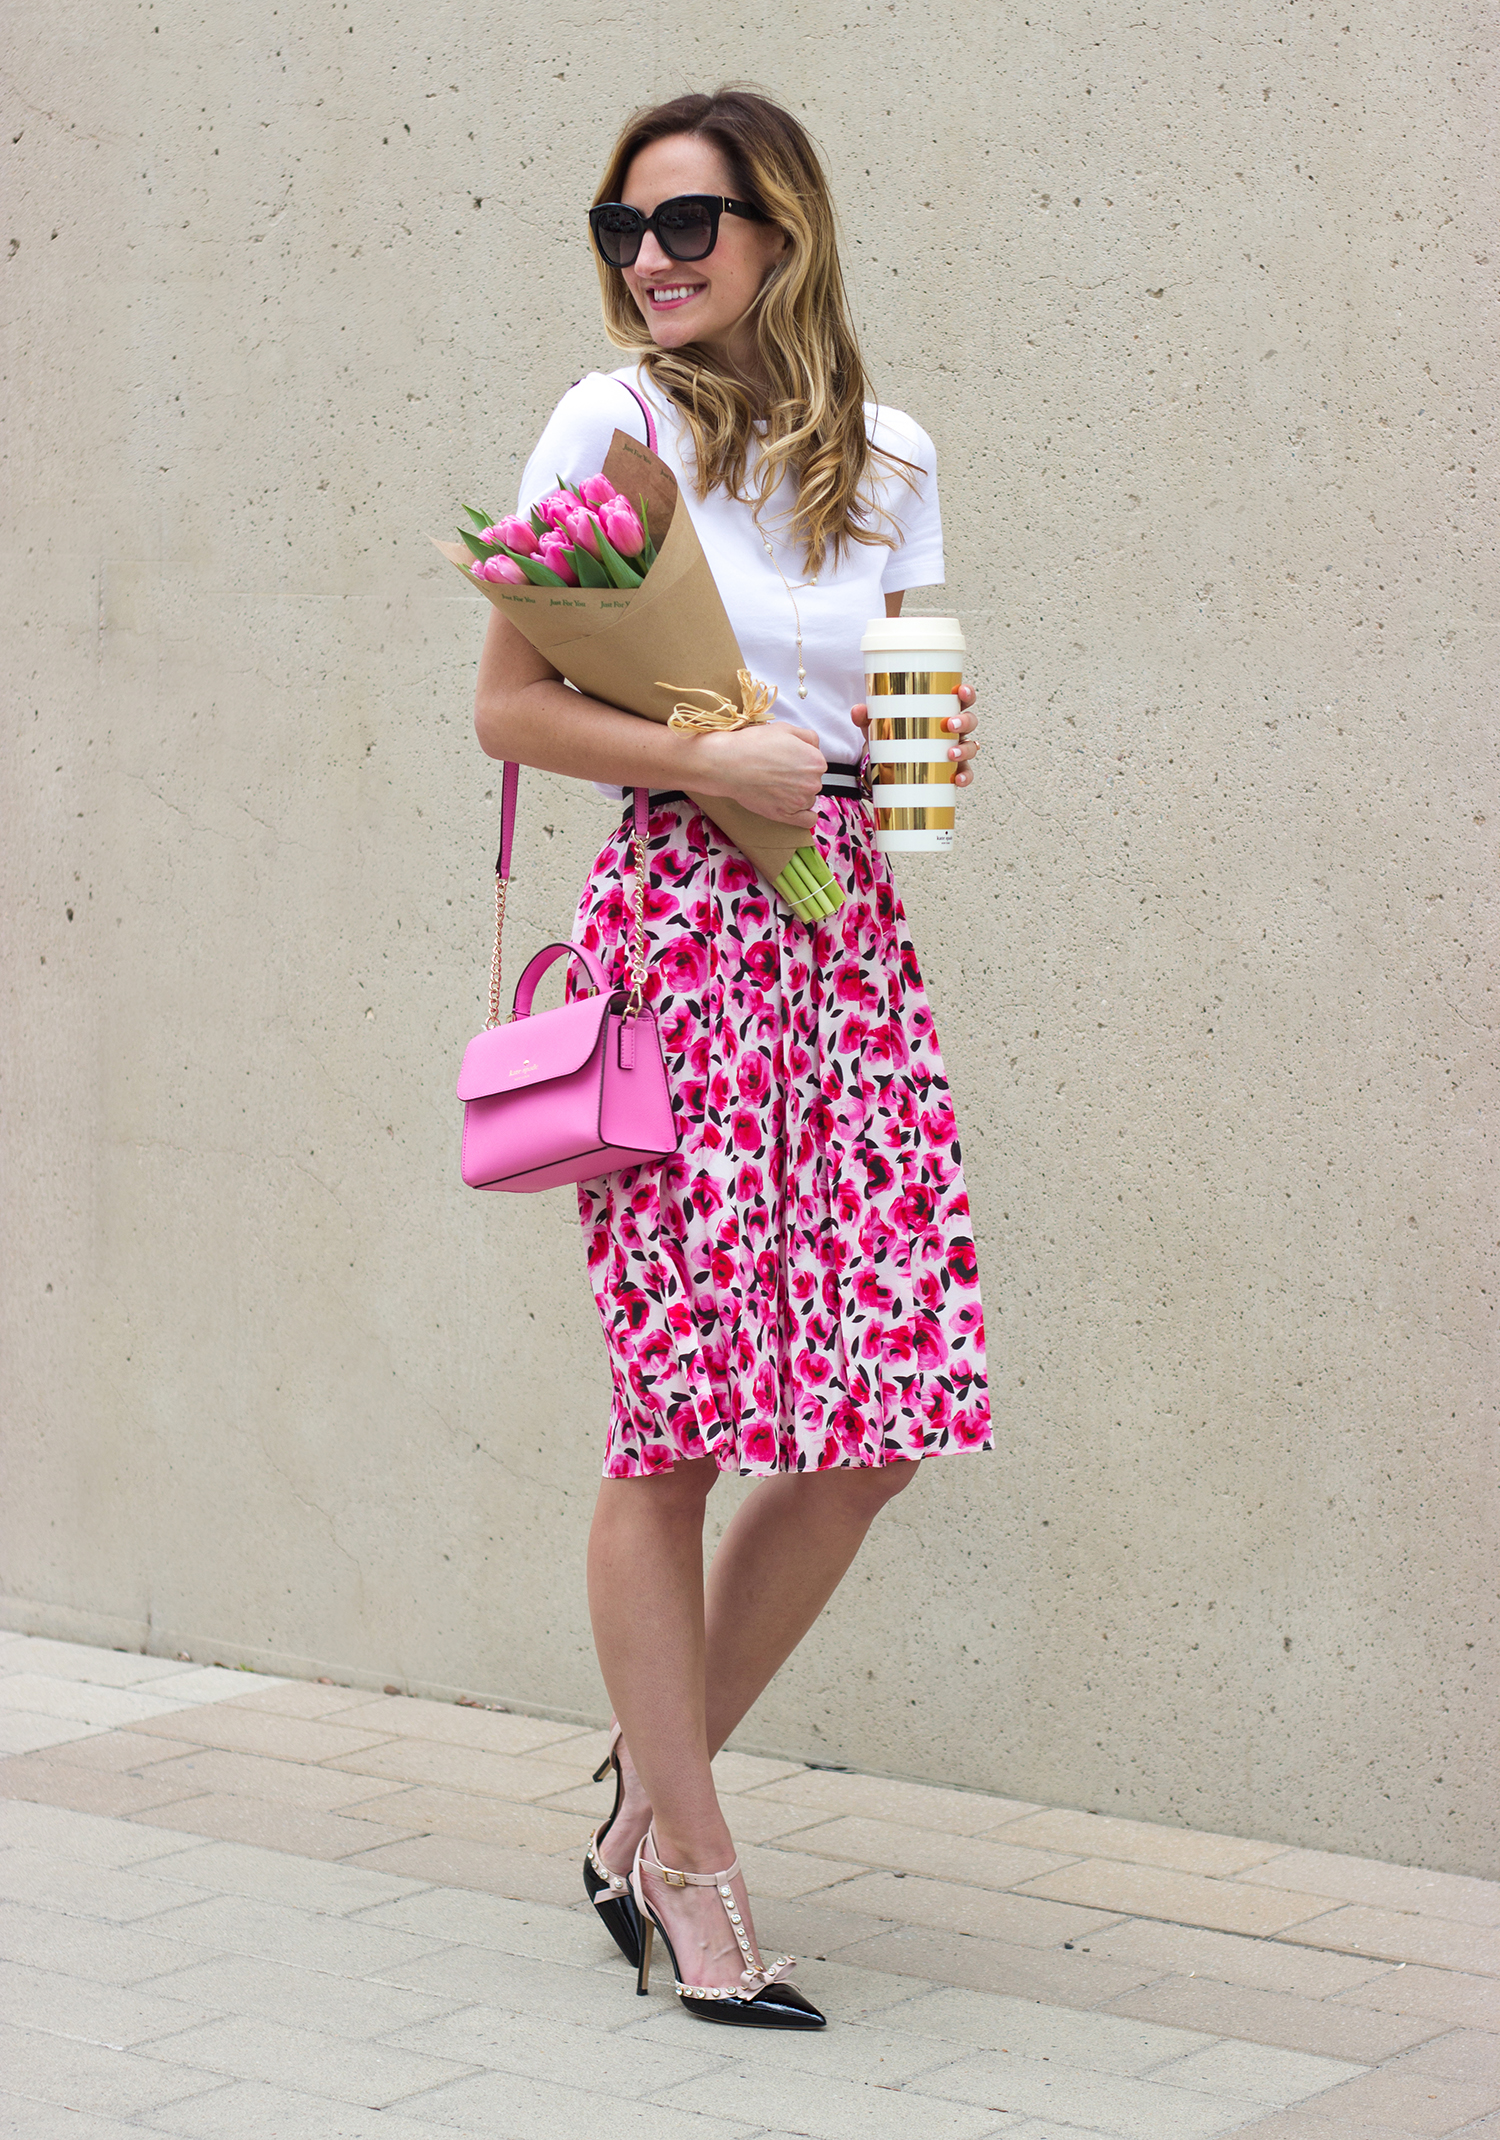 livvyland-blog-olivia-watson-austin-texas-fashion-blogger-kate-spade-broome-street-everyday-tee-white-rose-pleated-skirt-pink-black-spring-outfit-1